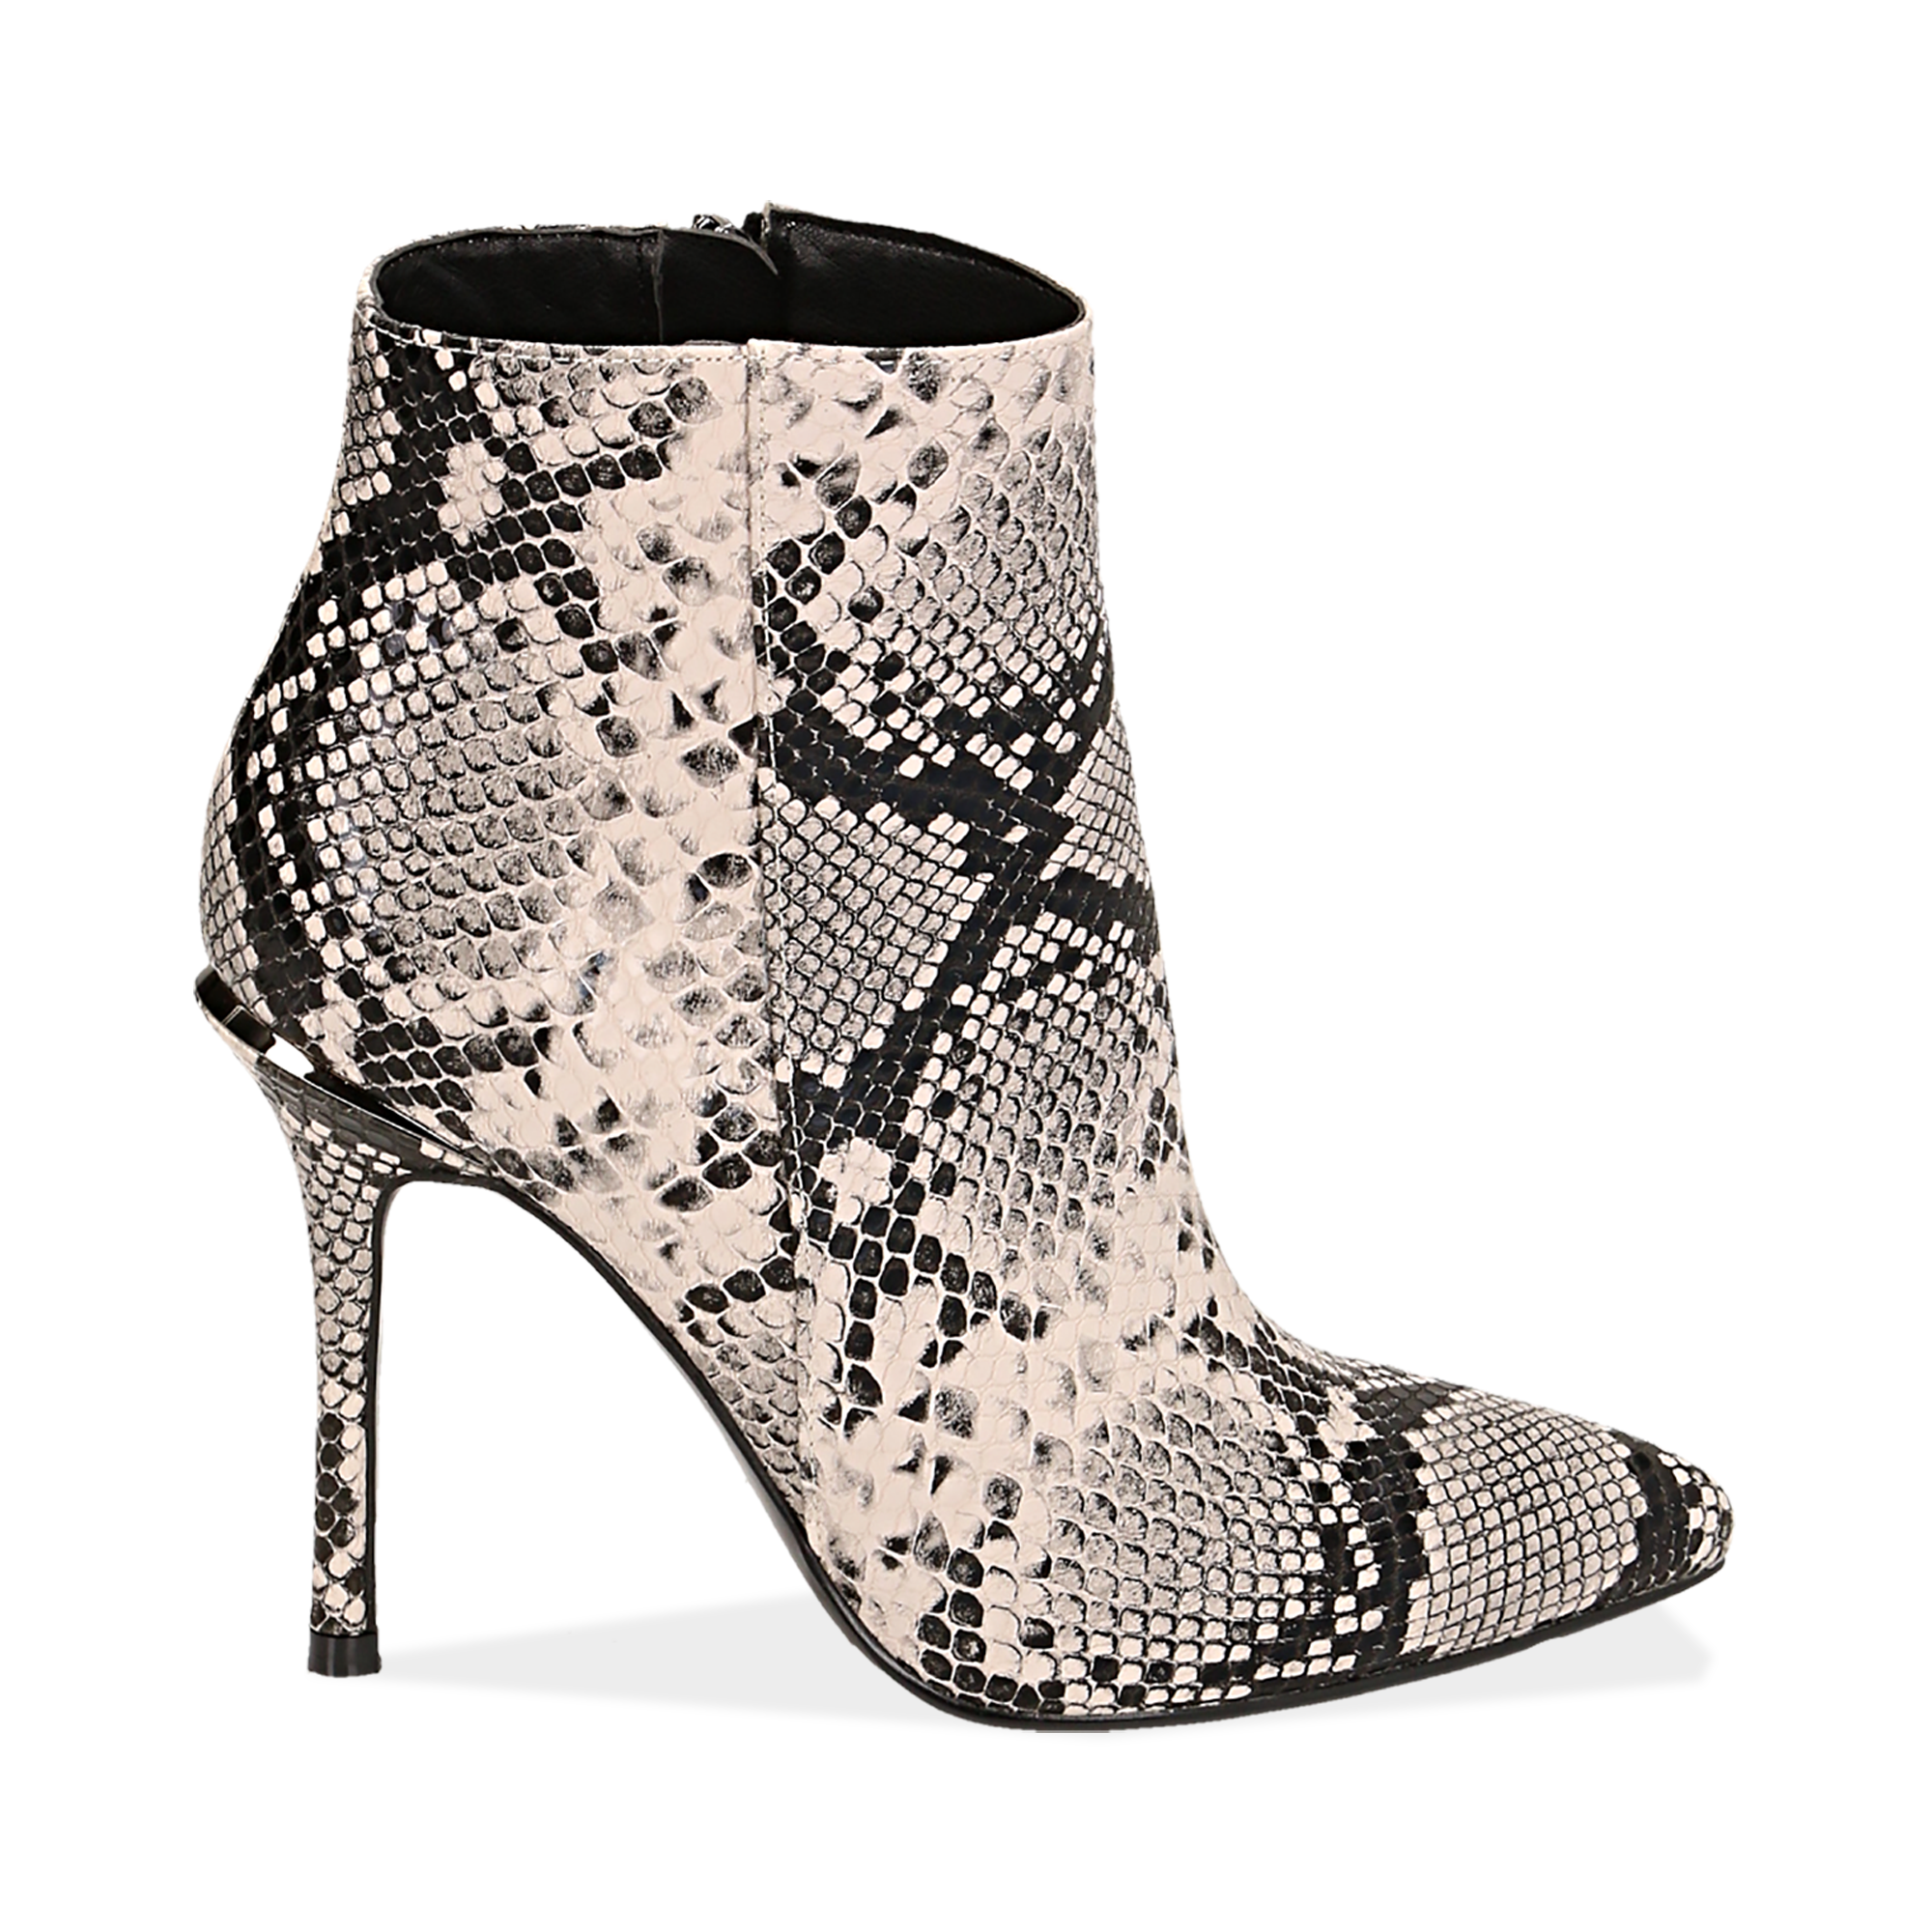 Ankle boots beige/neri effetto snake, tacco 11 cm